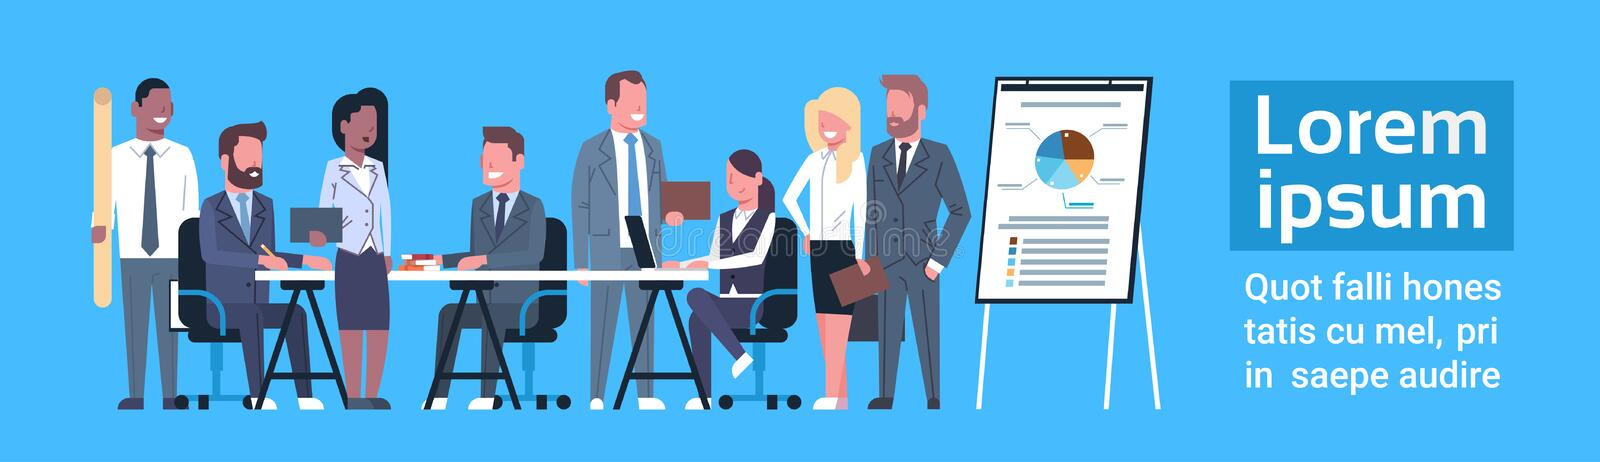 Business Team Brainstorming Concept Group Of Businesspeople Professionals Meeting Discussing Report Market Data vector illustration